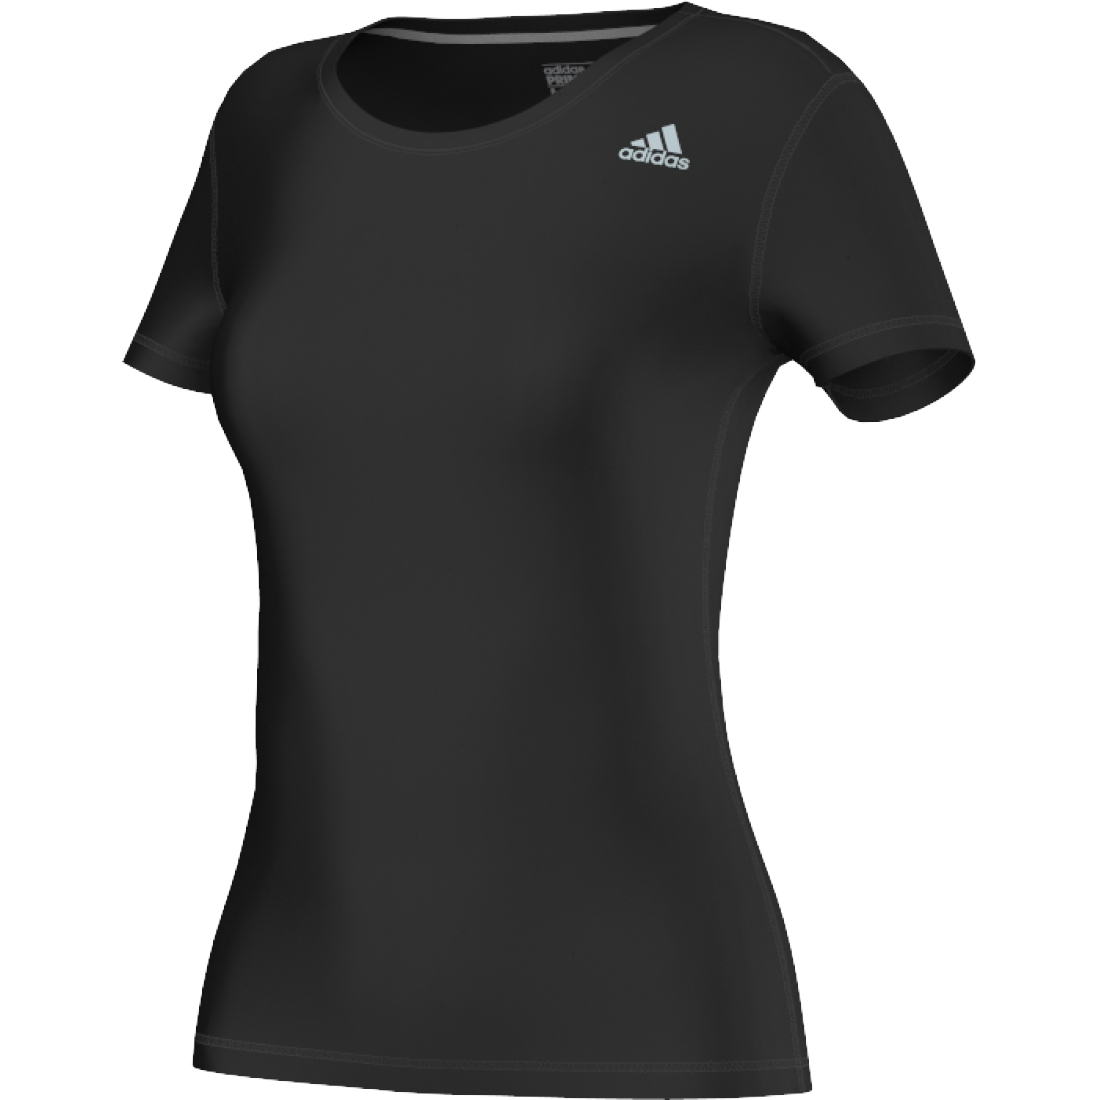 Image of   Adidas Go To Gear Prime Tee DD